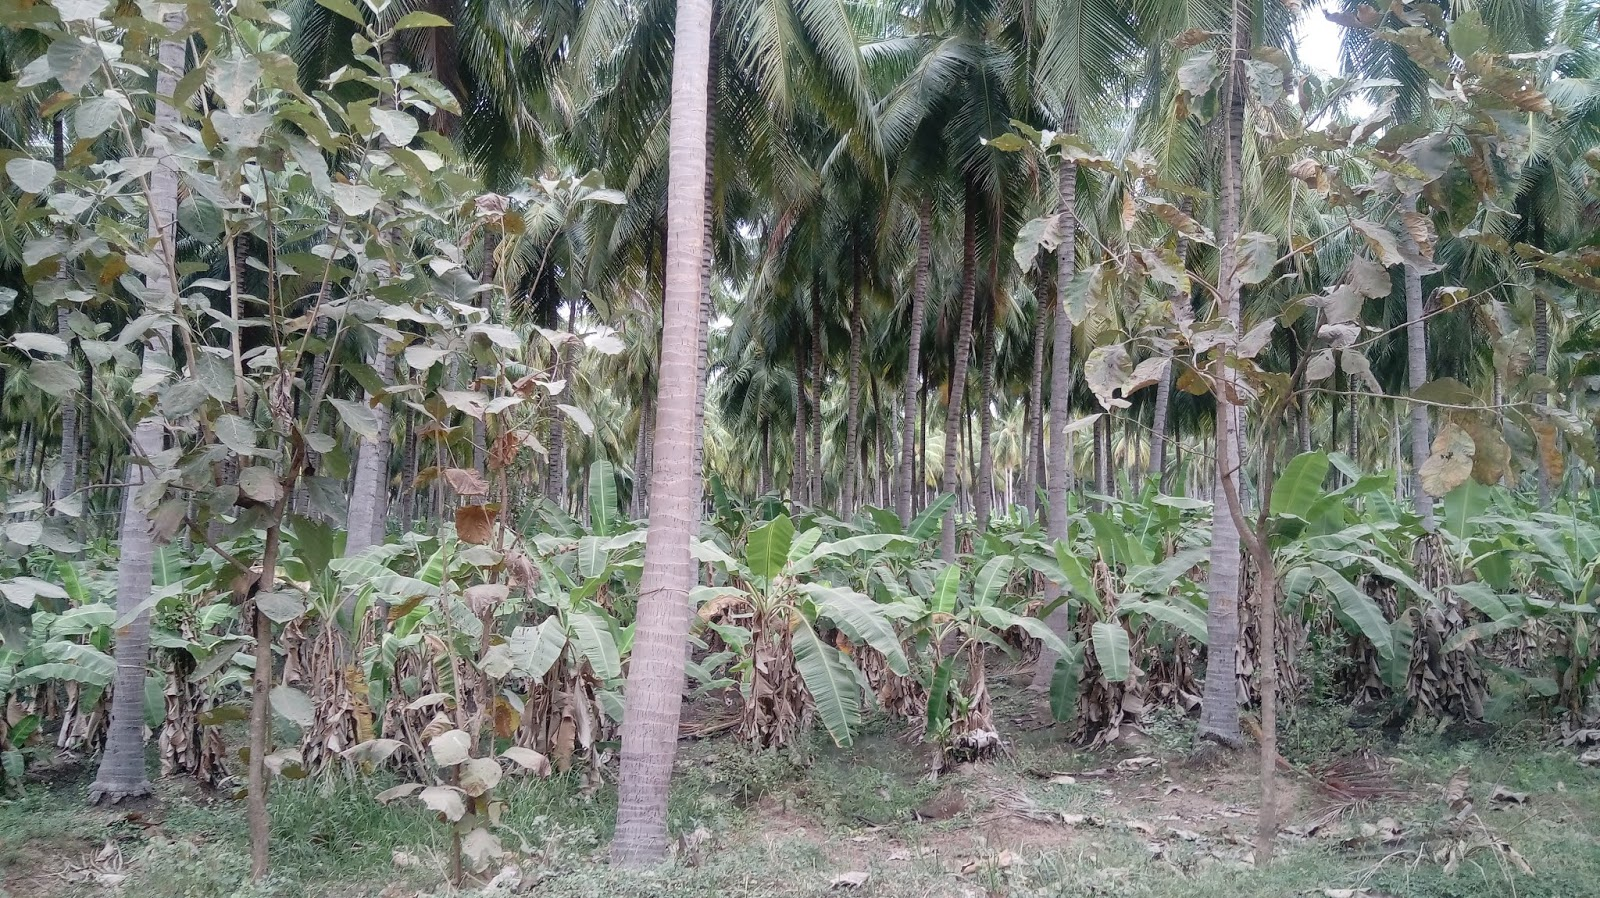 Coconut farms for sale in near sholavandan, madurai district